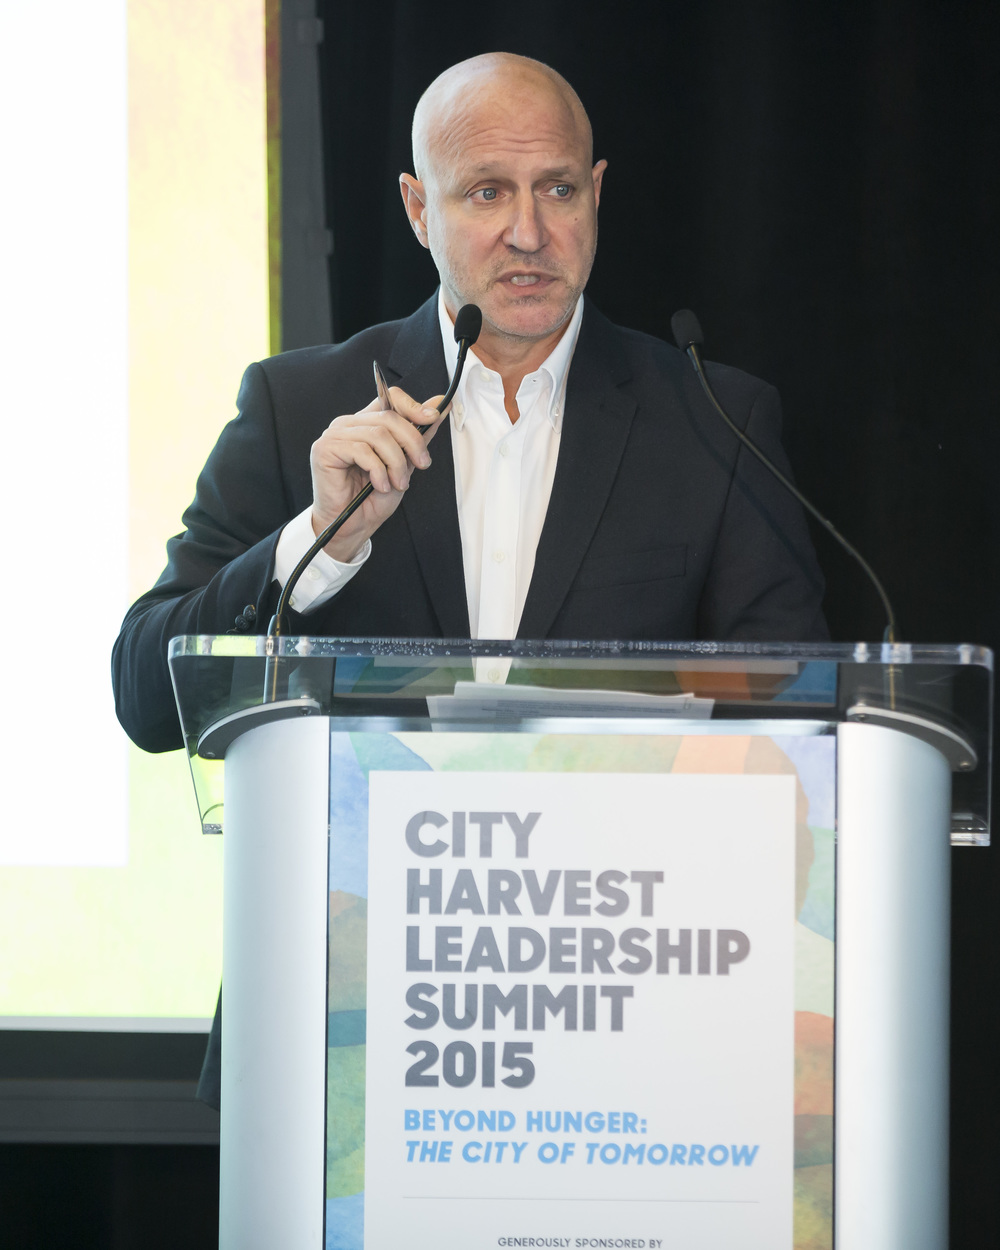 City Harvest Leadership Summit 2015